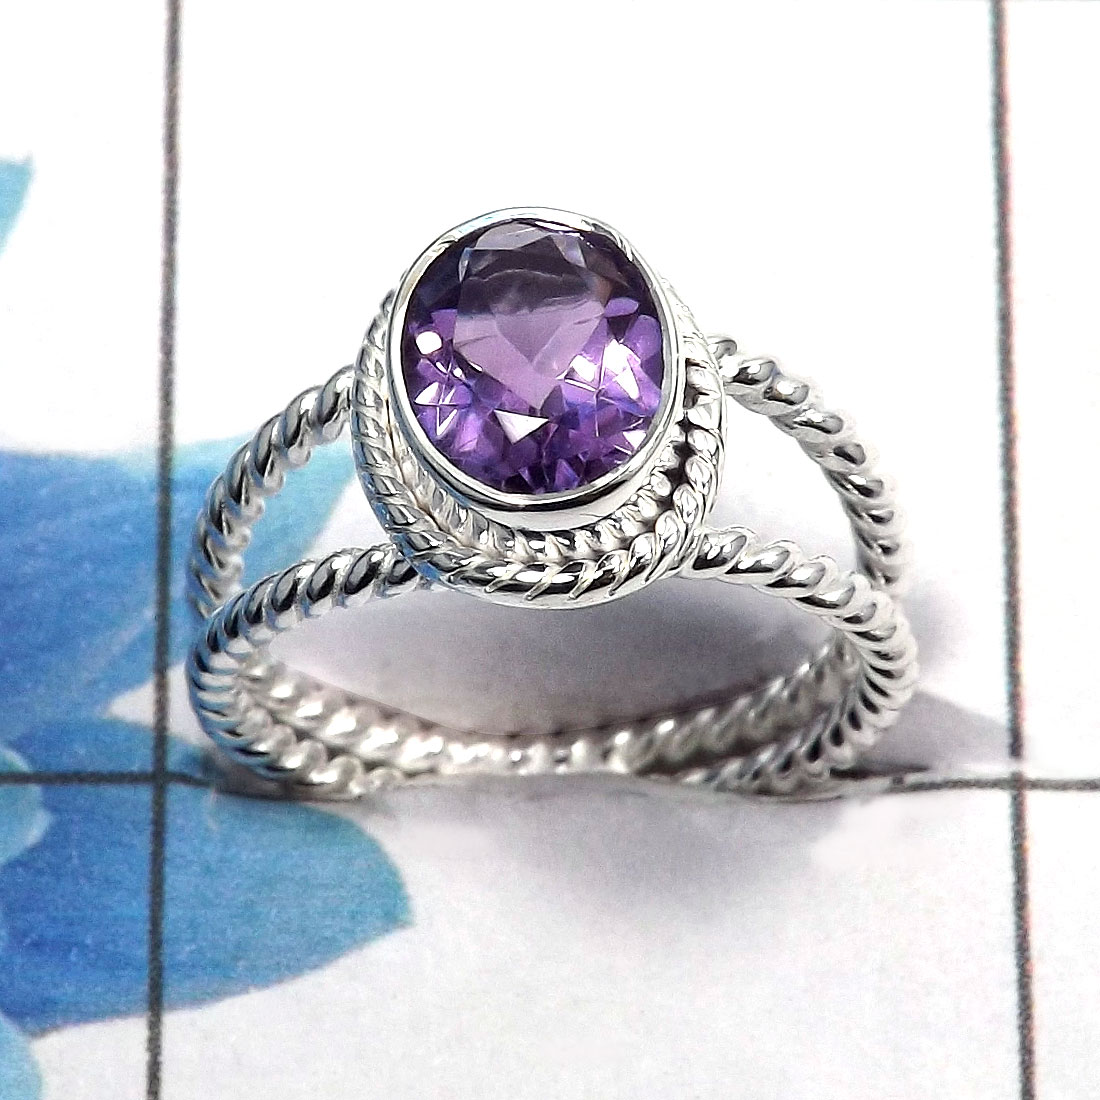 Amethyst Cut D - SDR459 - Natural Purple Amethyst Oval Cut Gemstone 925 Sterling Silver Designer Ring